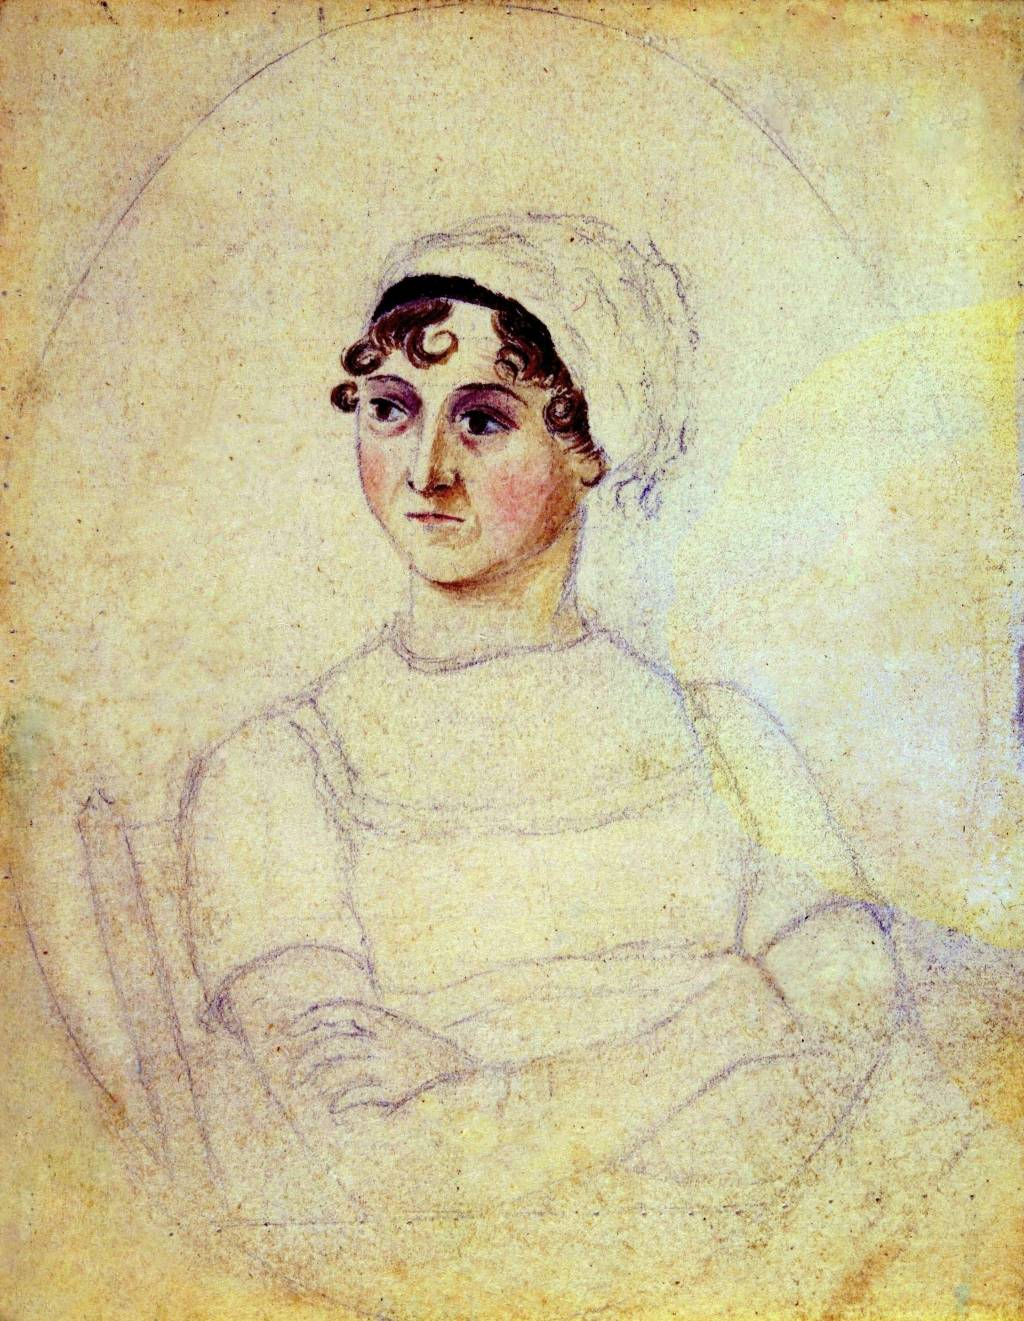 elinor and marianne from sense and sensibility by jane austen  jane austen watercolour and pencil portrait by her sister cassandra 1810